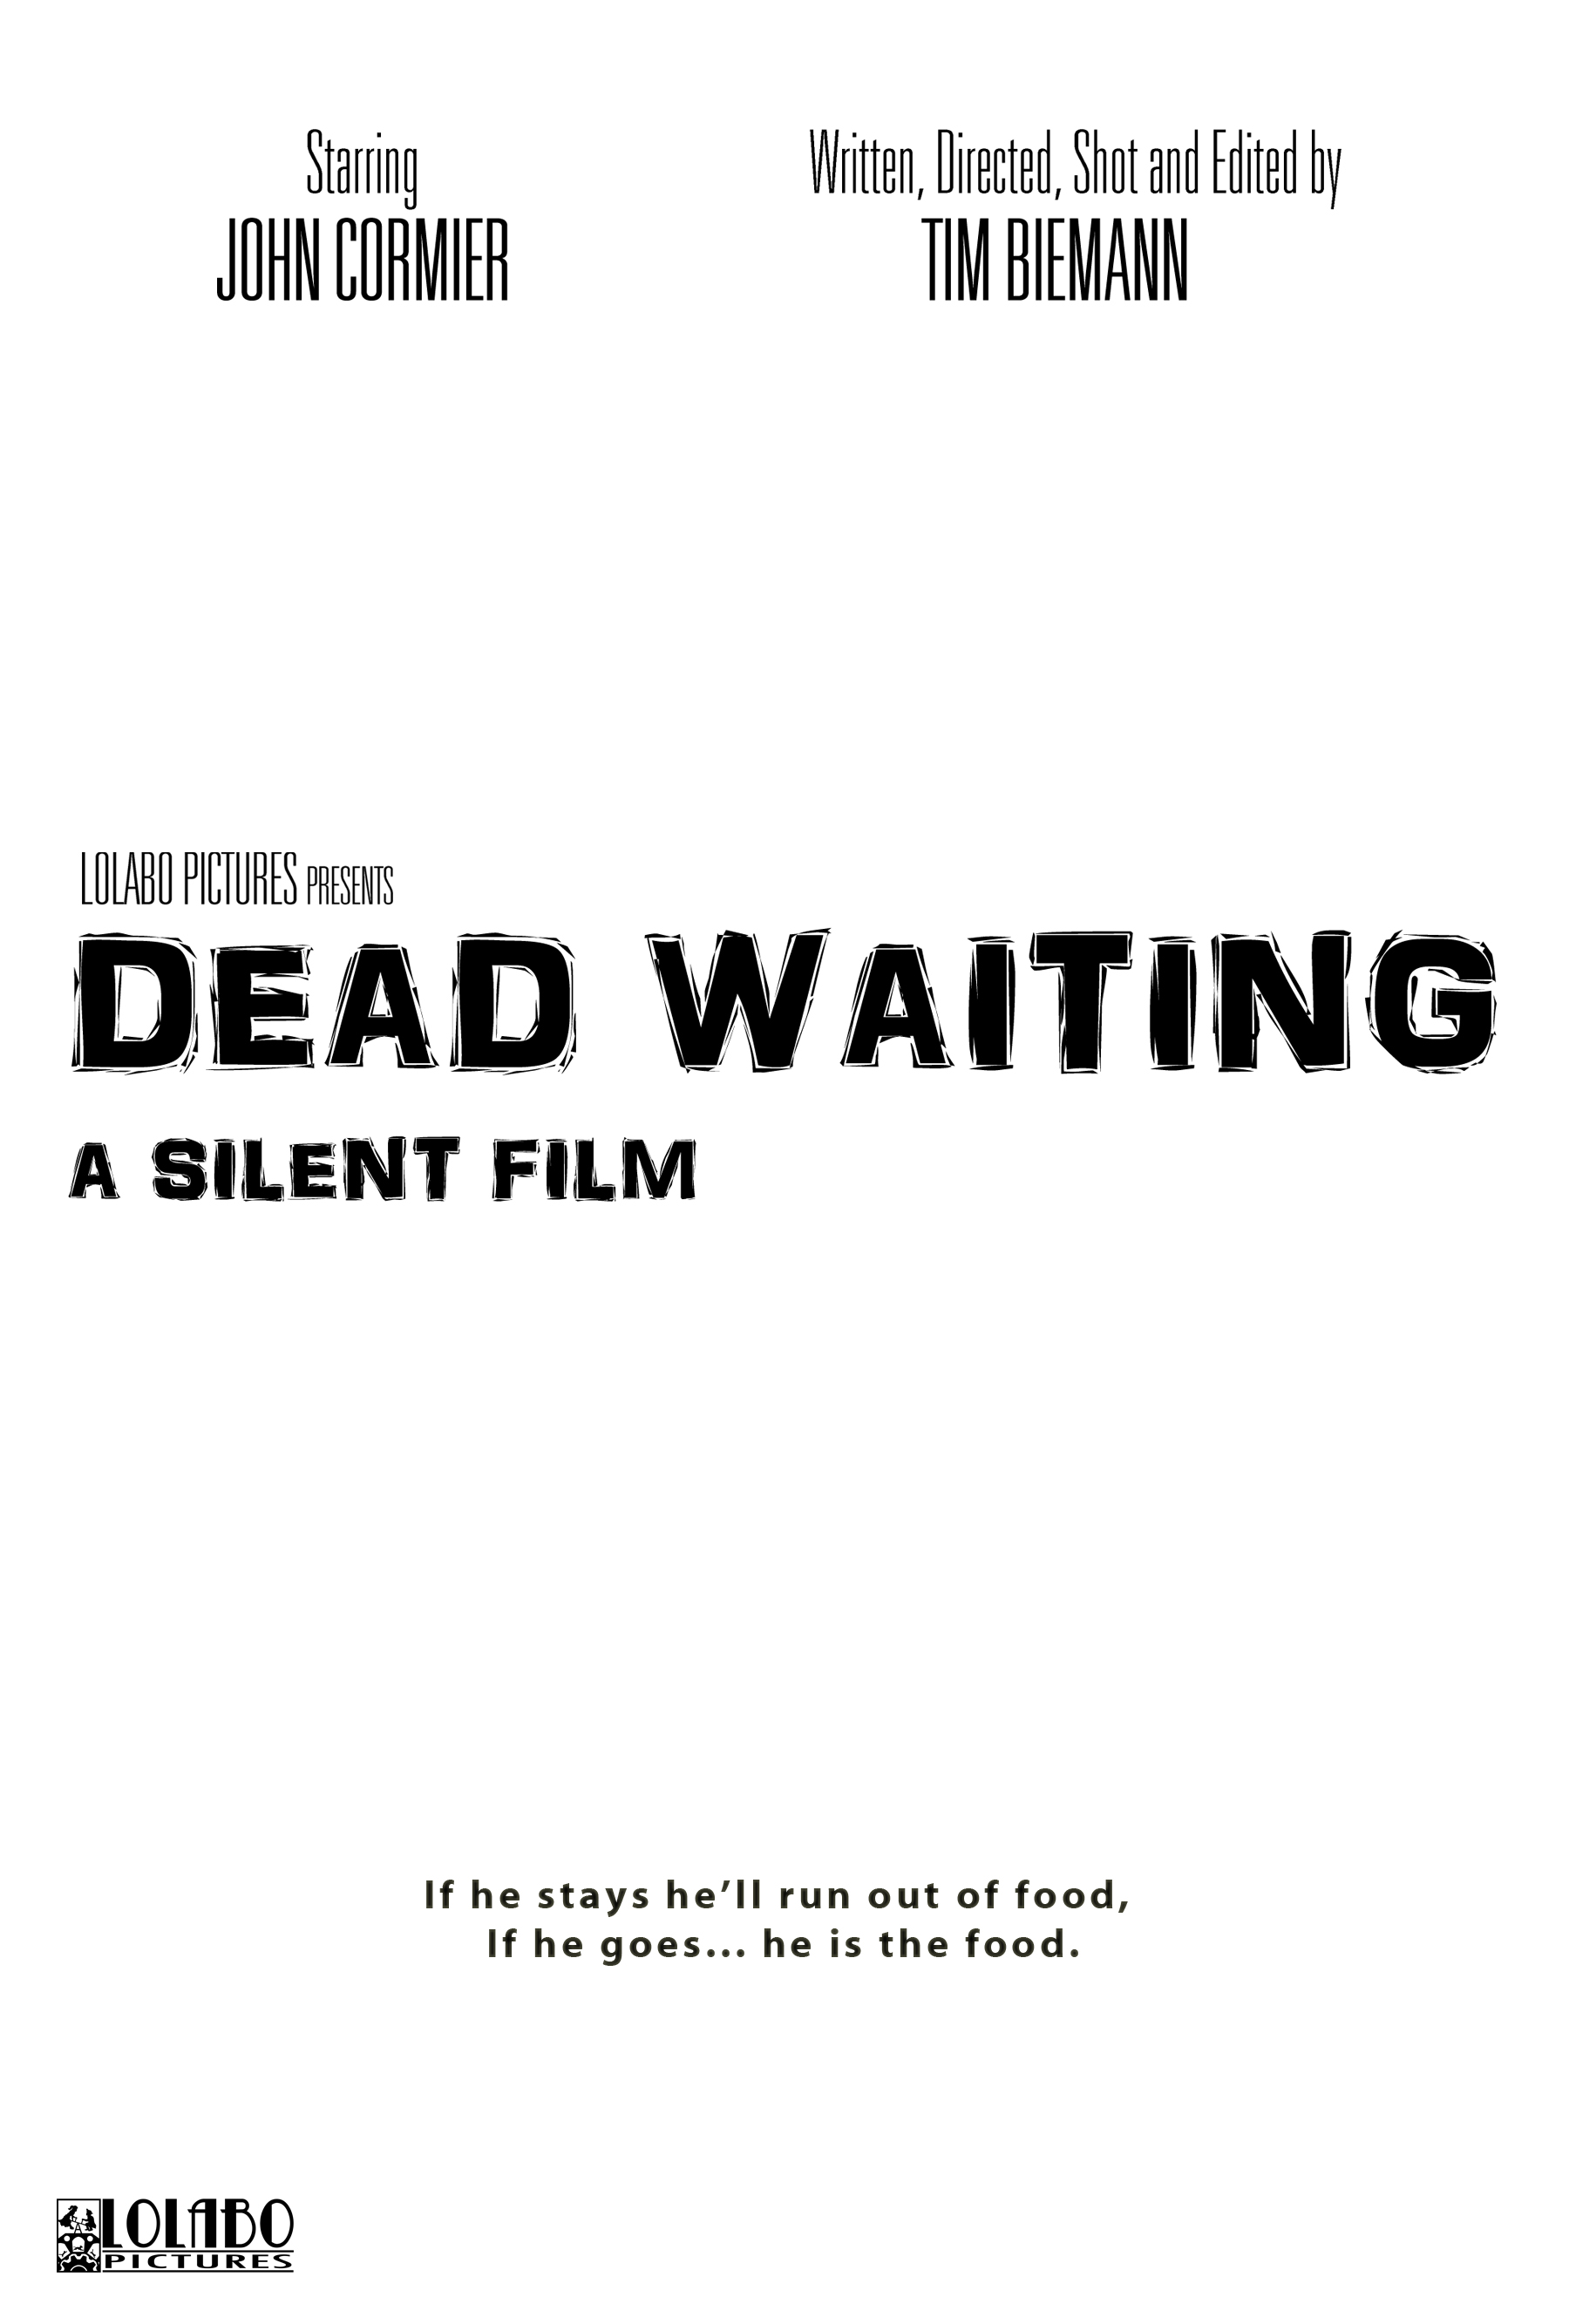 Dead Waiting - The zombie apocalypse has happened. One man, locked in an empty apartment building, lives out his days feeding off of the abandoned goods left behind. But how long can it last? As time ticks away the man must prepare for the inevitable day when he has leave.